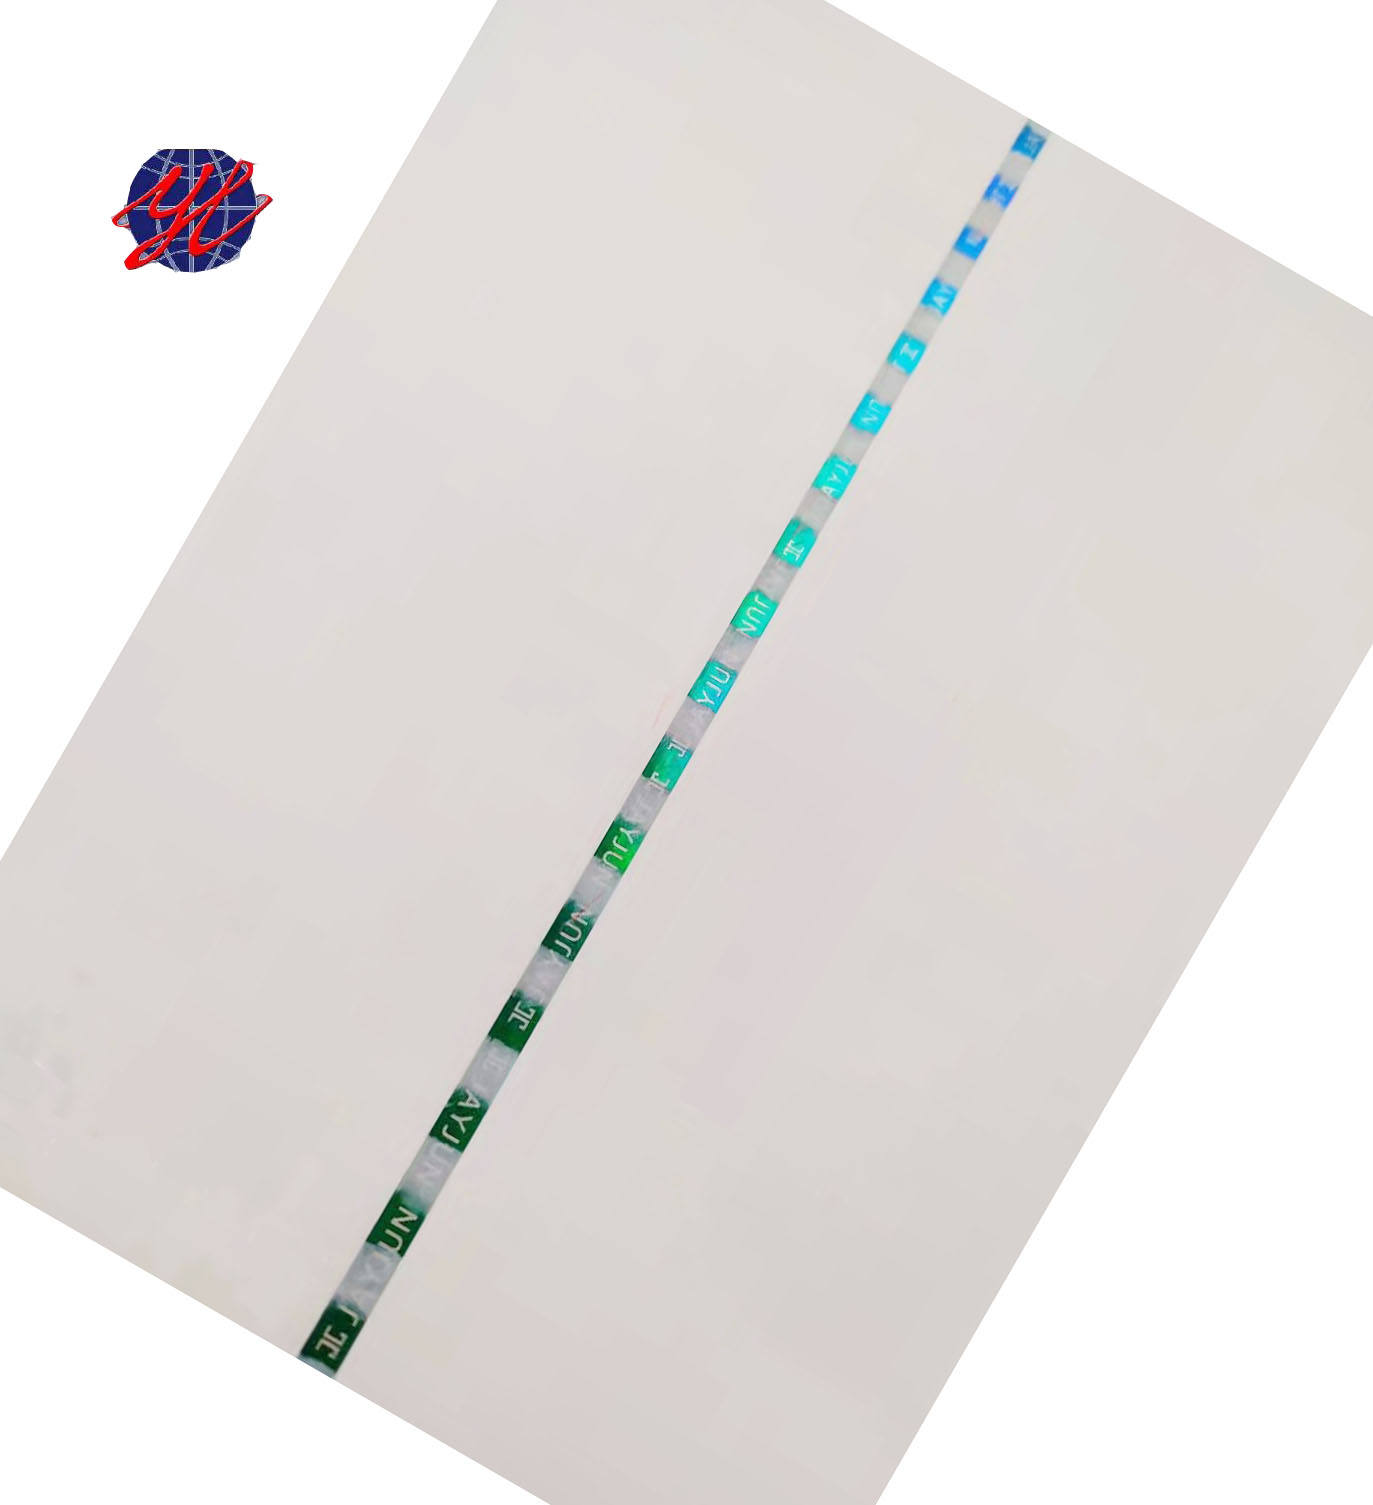 Security paper with watermark for certificate and cheque printing